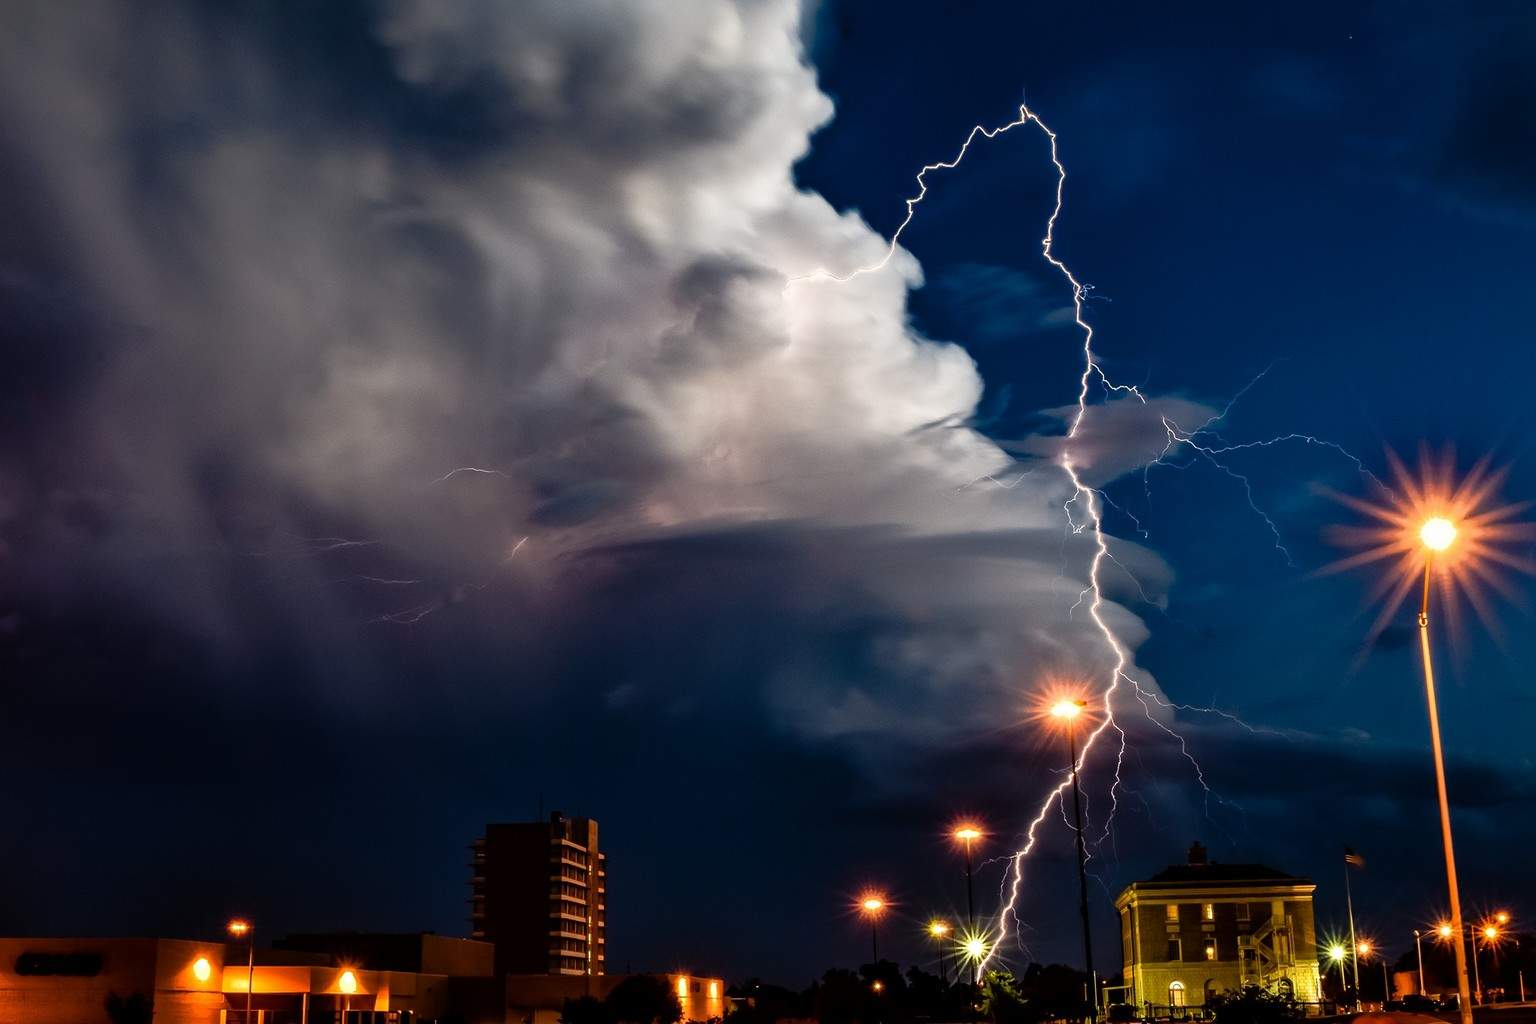 """Bolt from the Blue"" Captured 8/26/16 in downtown Lawton, Oklahoma. This is my favorite shot so far...I hope to catch more great opportunities during our upcoming storm season!"